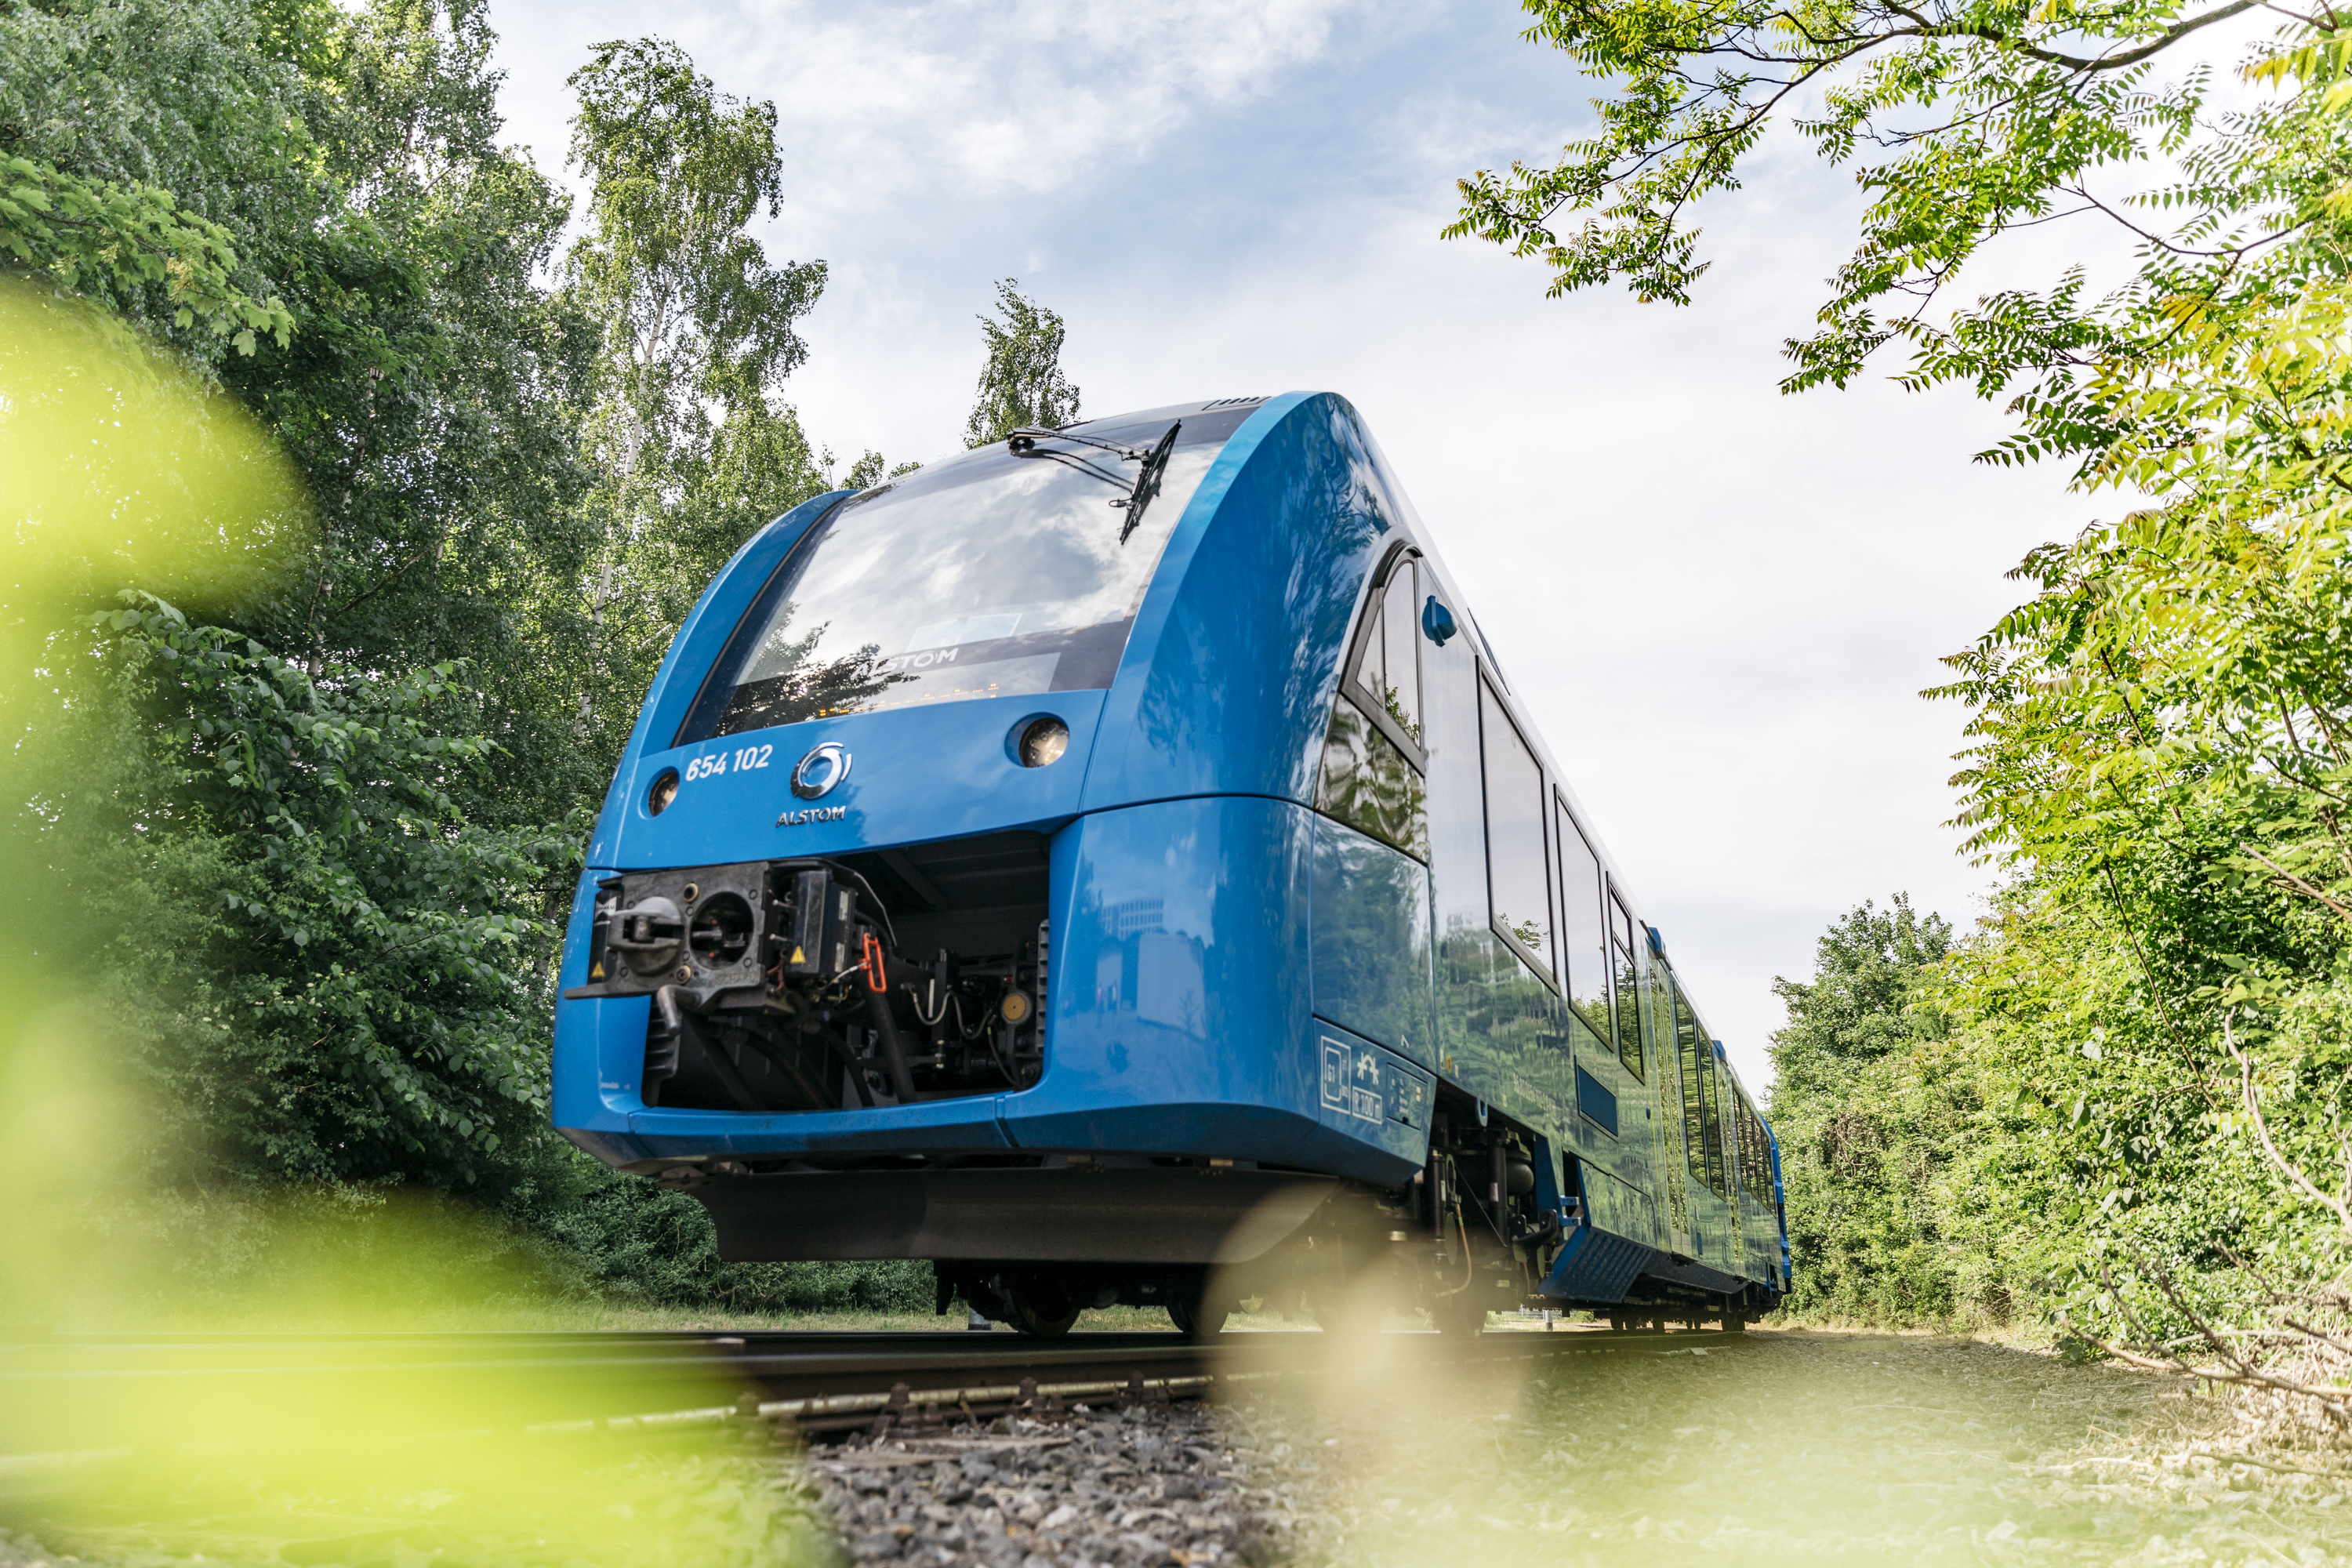 Successful year and a half of trial operation of the world's first two hydrogen trains, next project phase begins